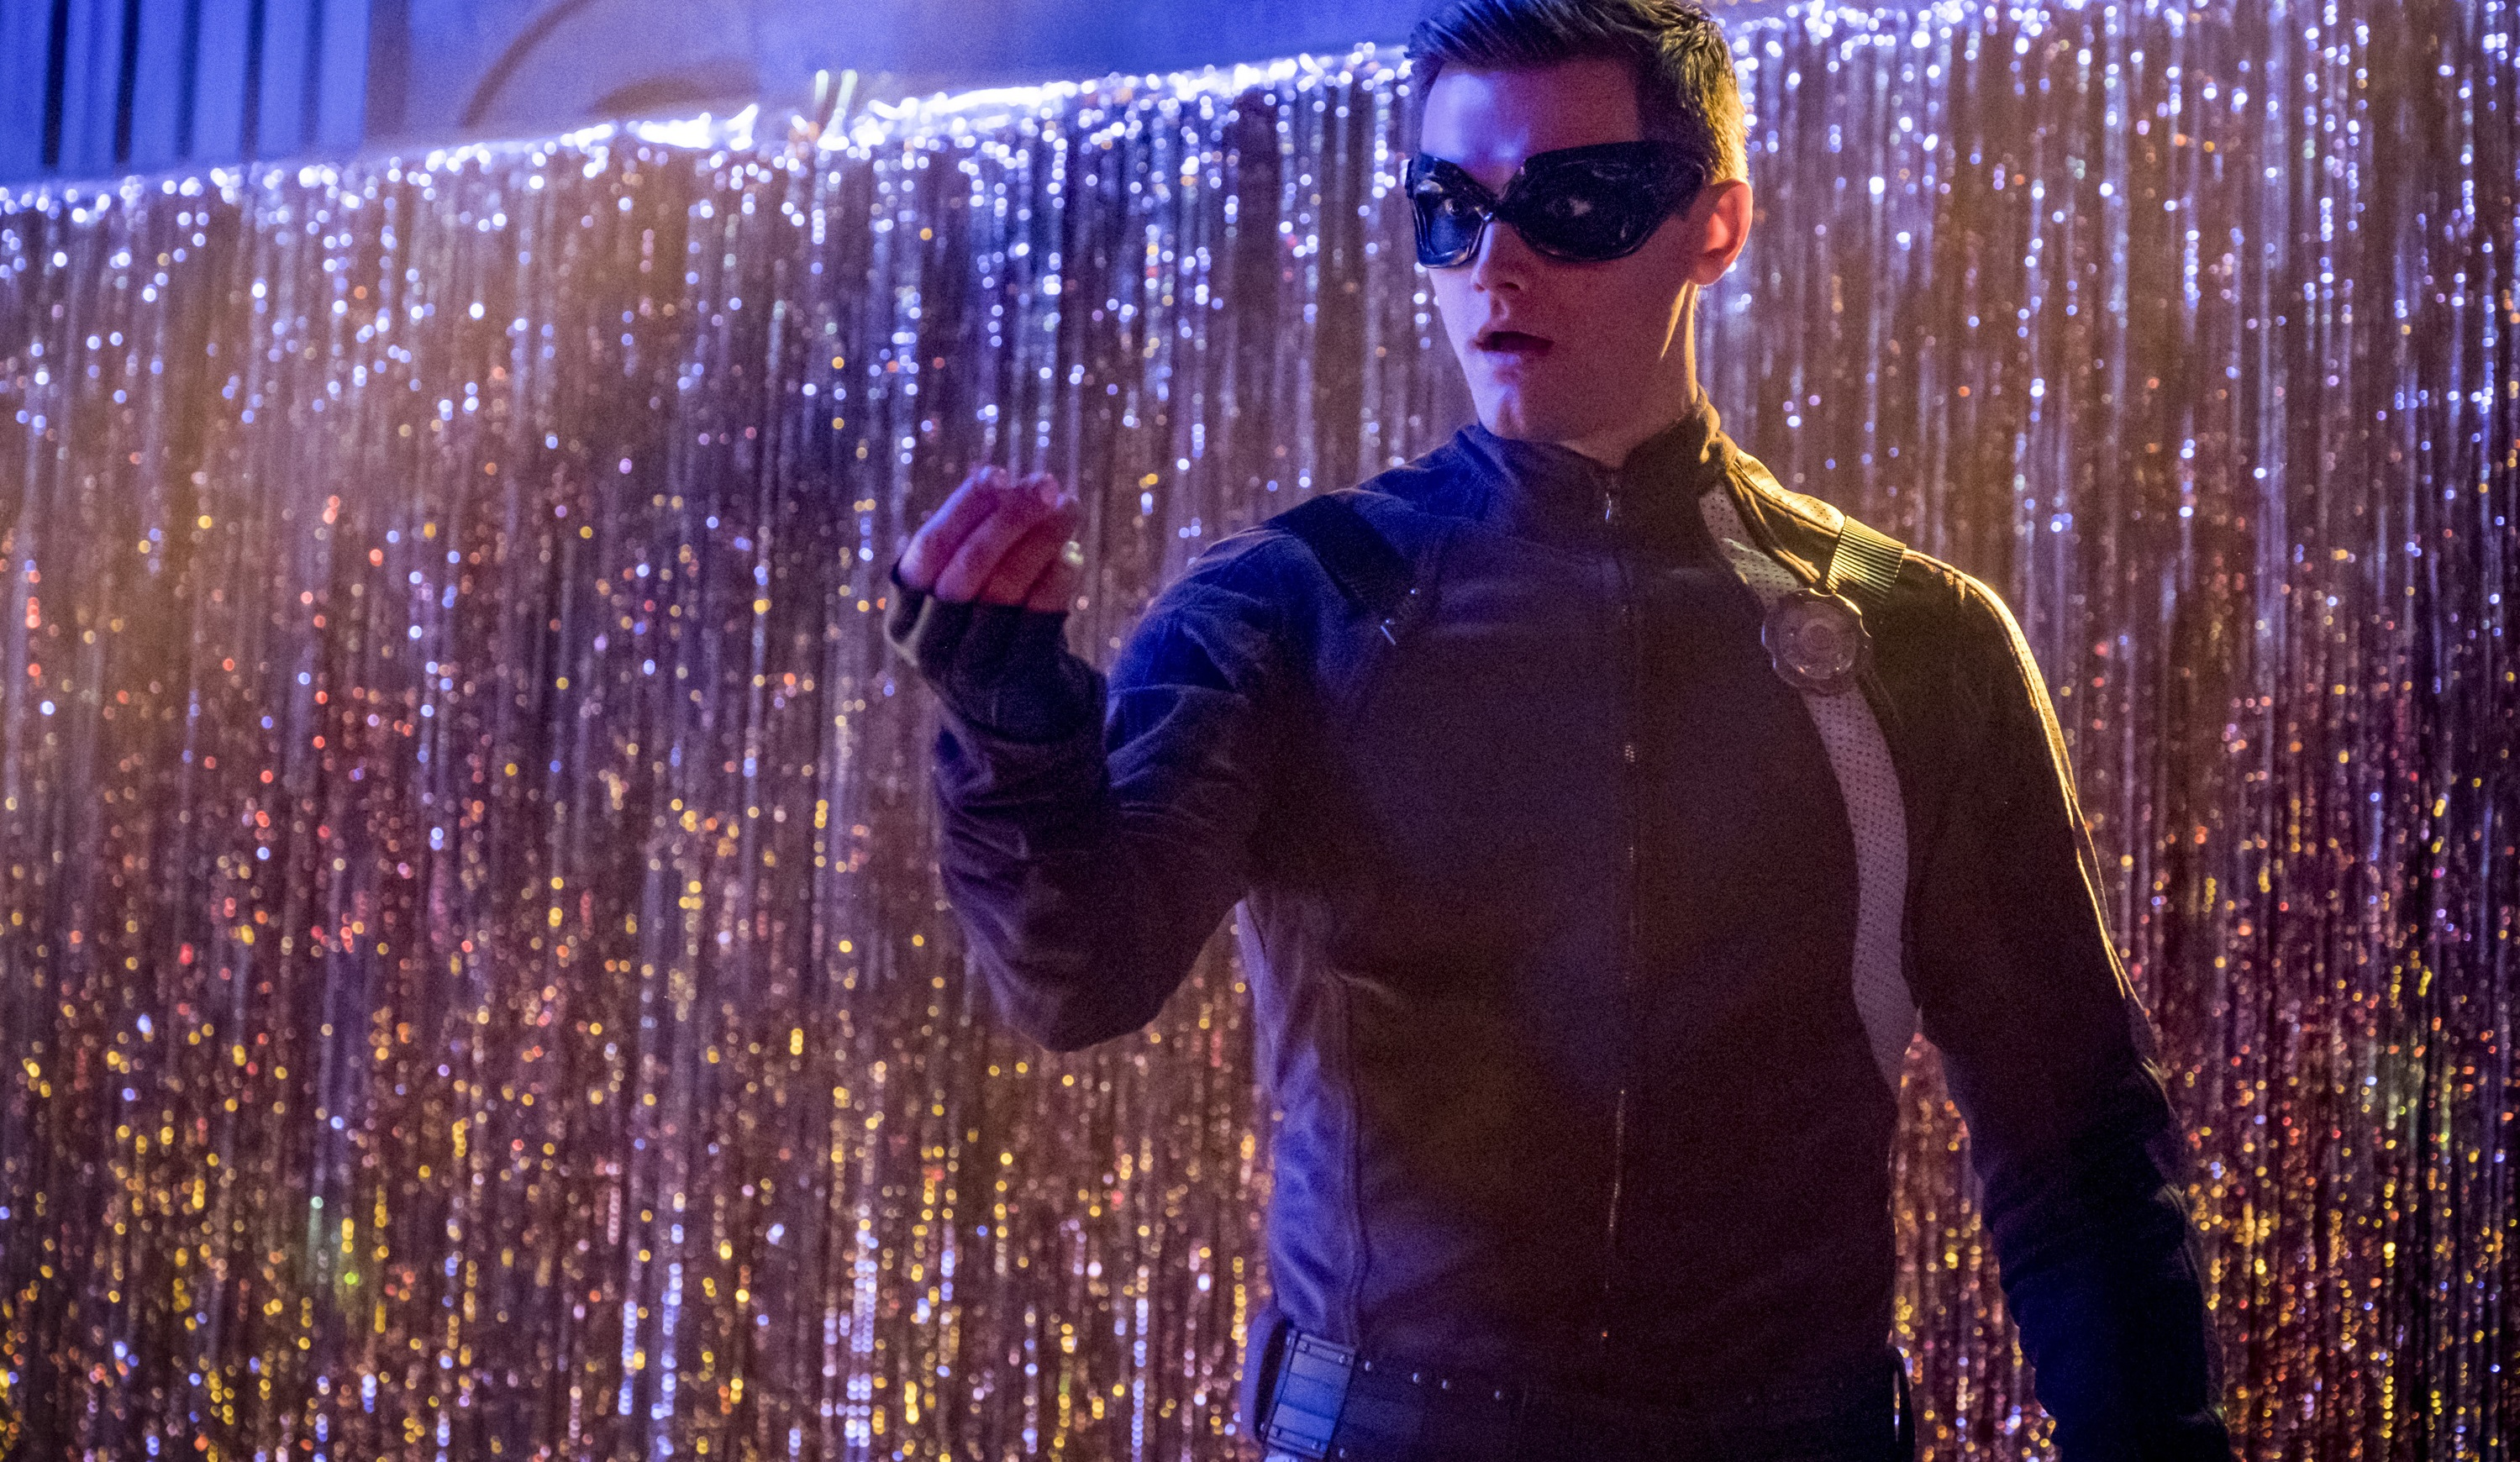 Ralph Dibny Brings Heart Humor And Heroism To The Flash Dc